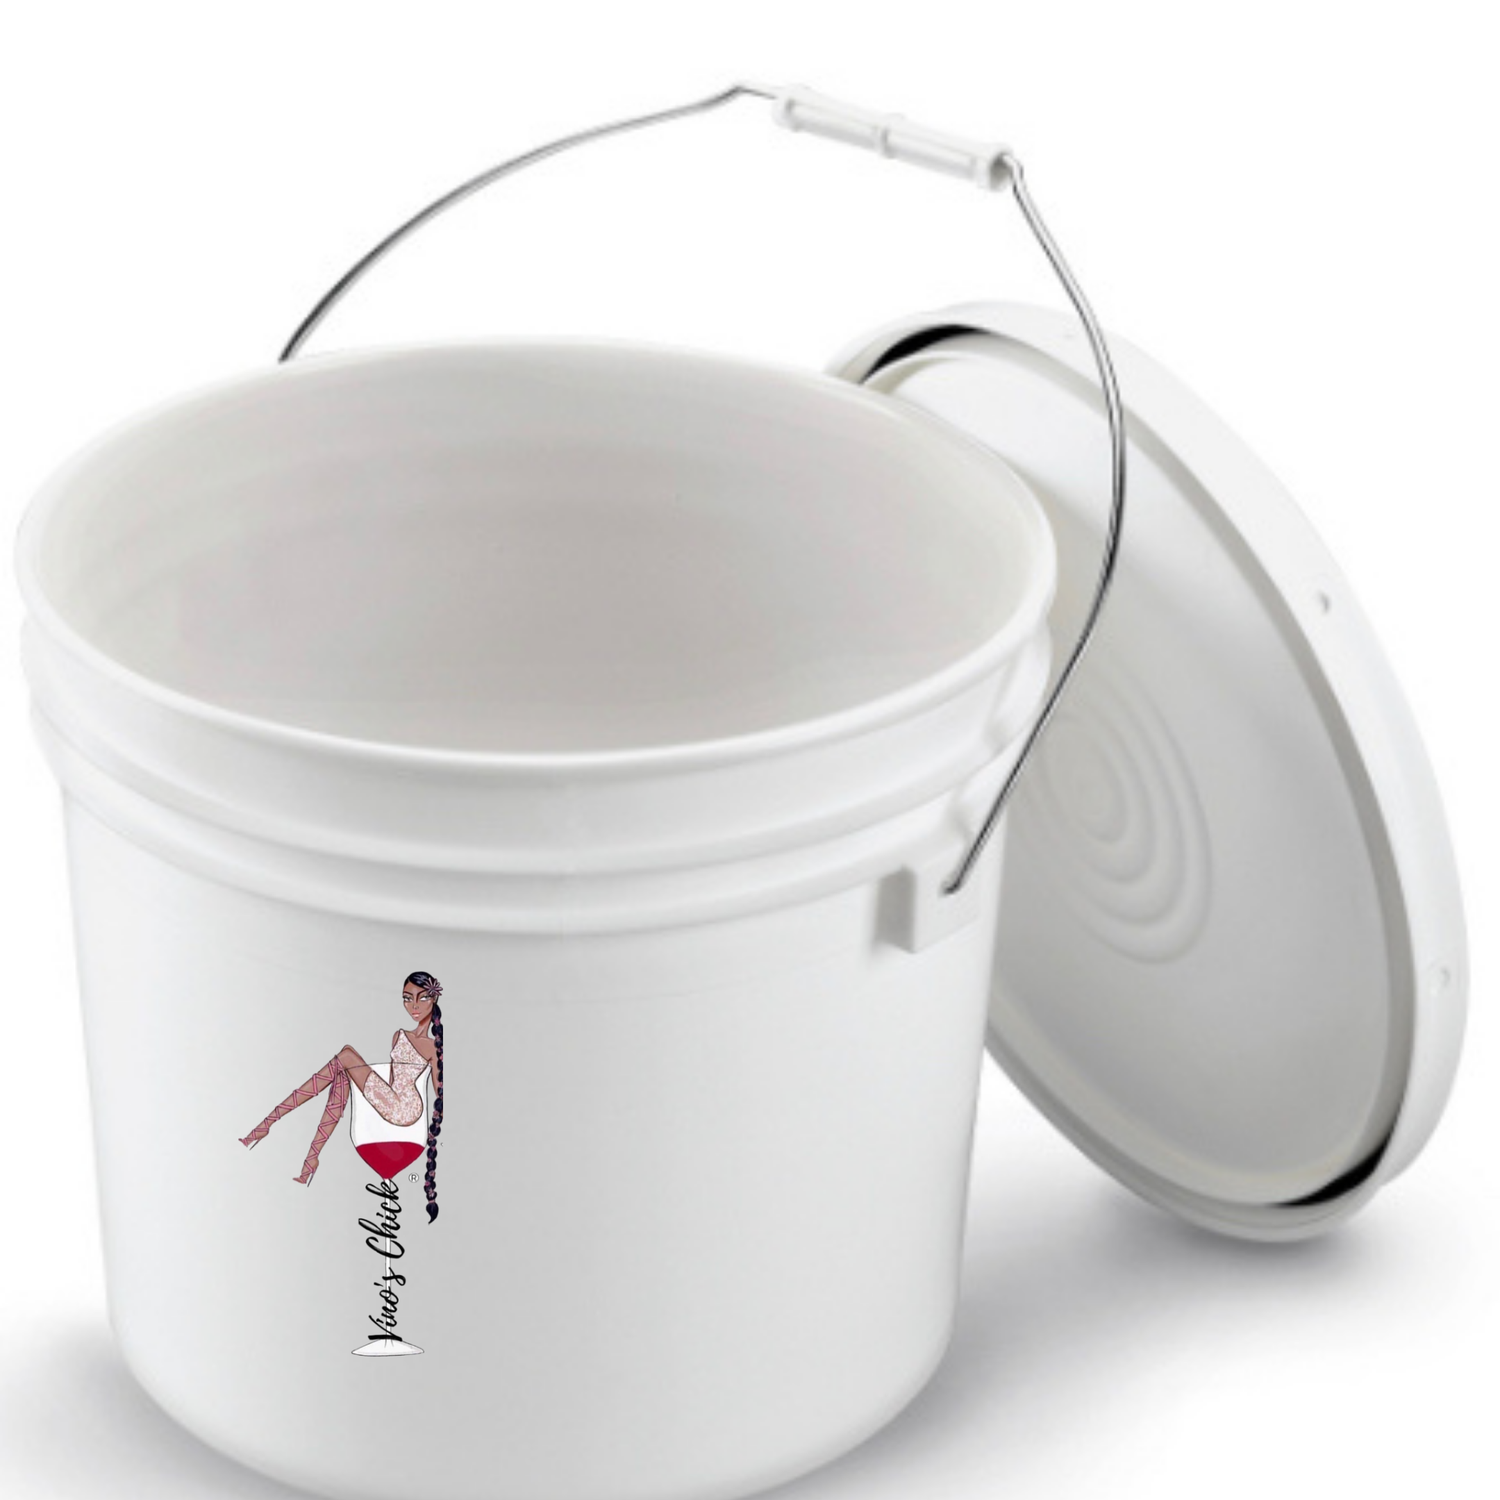 Image of 2 Pack - 2 Gallon Primary Fermentation Buckets and Lid